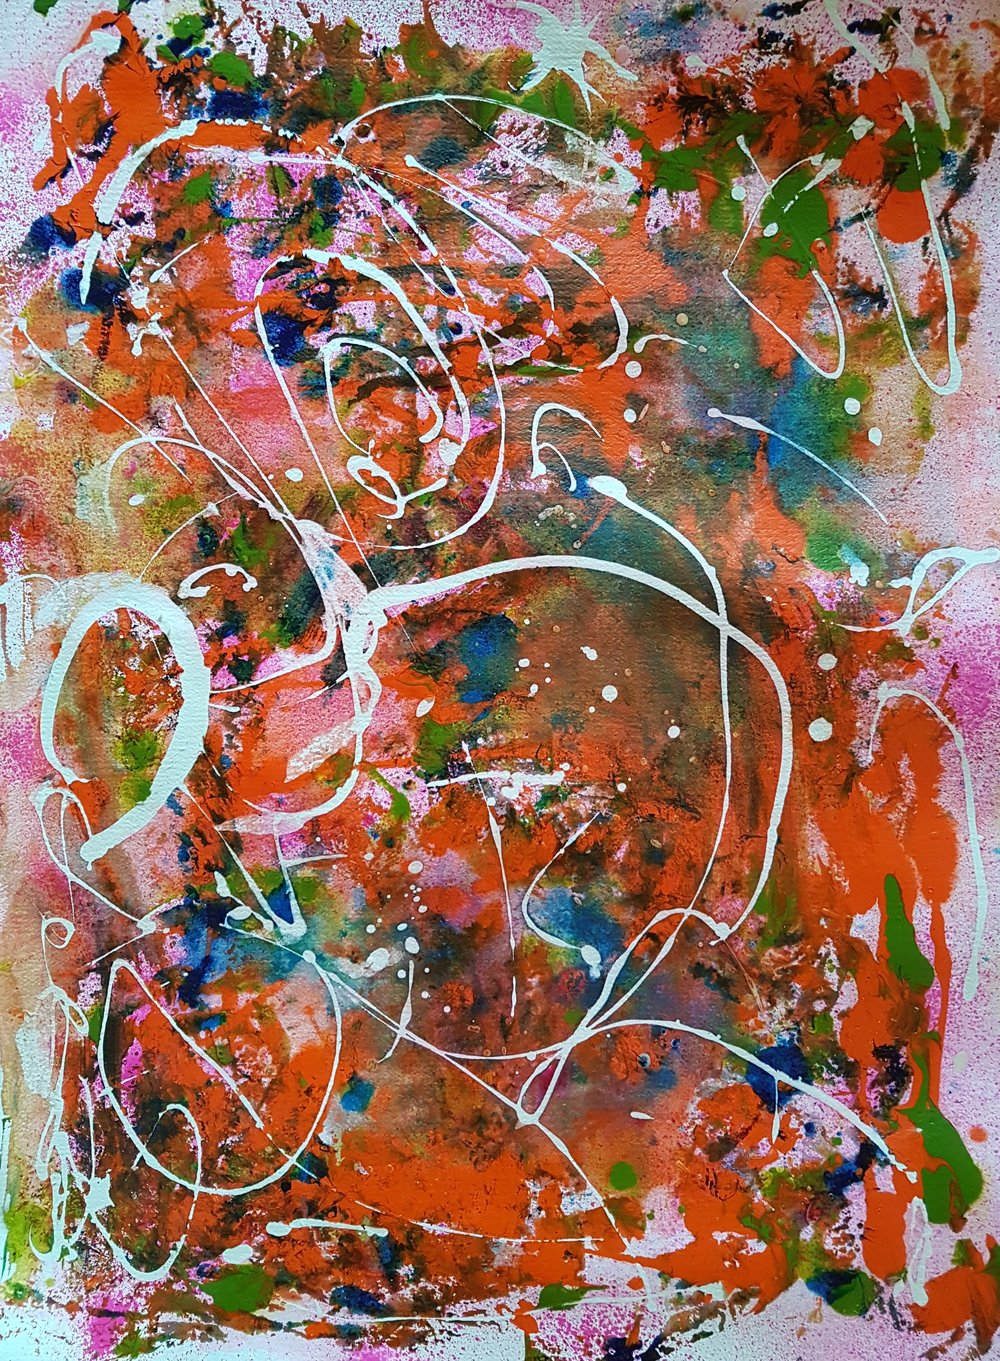 lynn wilson - Abstract Full Piece of Wyannes lesson Masking Fluid Rotated .jpg